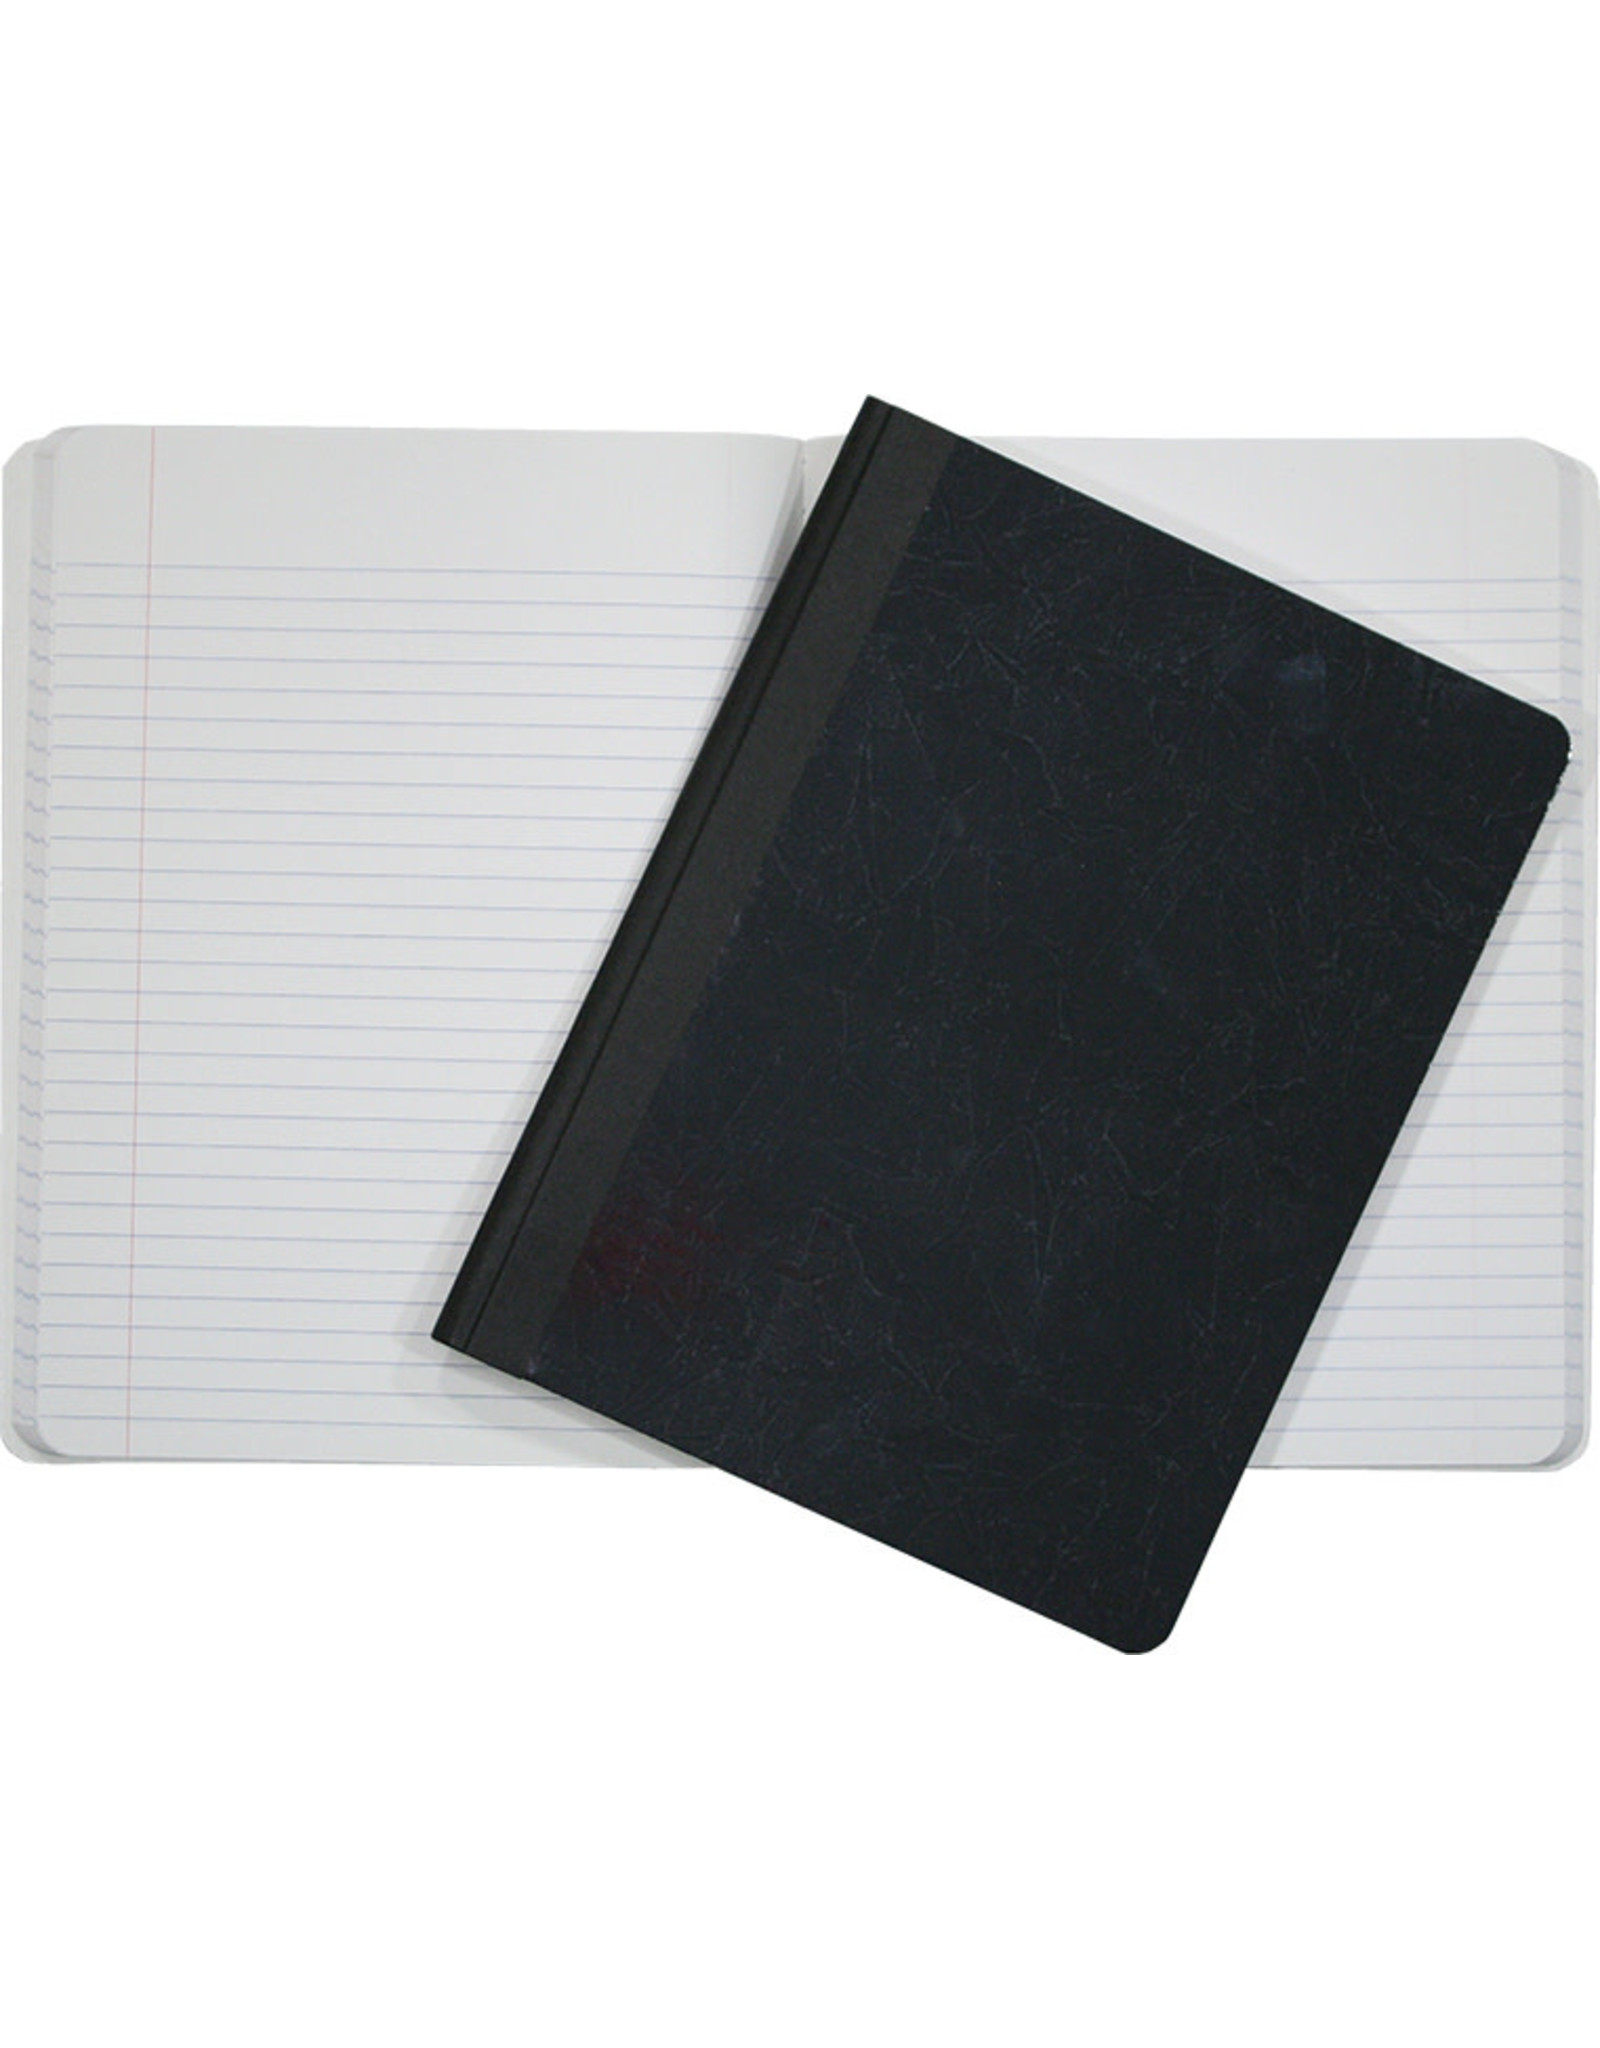 Hilroy COMPOSITION BOOK-9.75X7.5 200 PAGES, BLACK